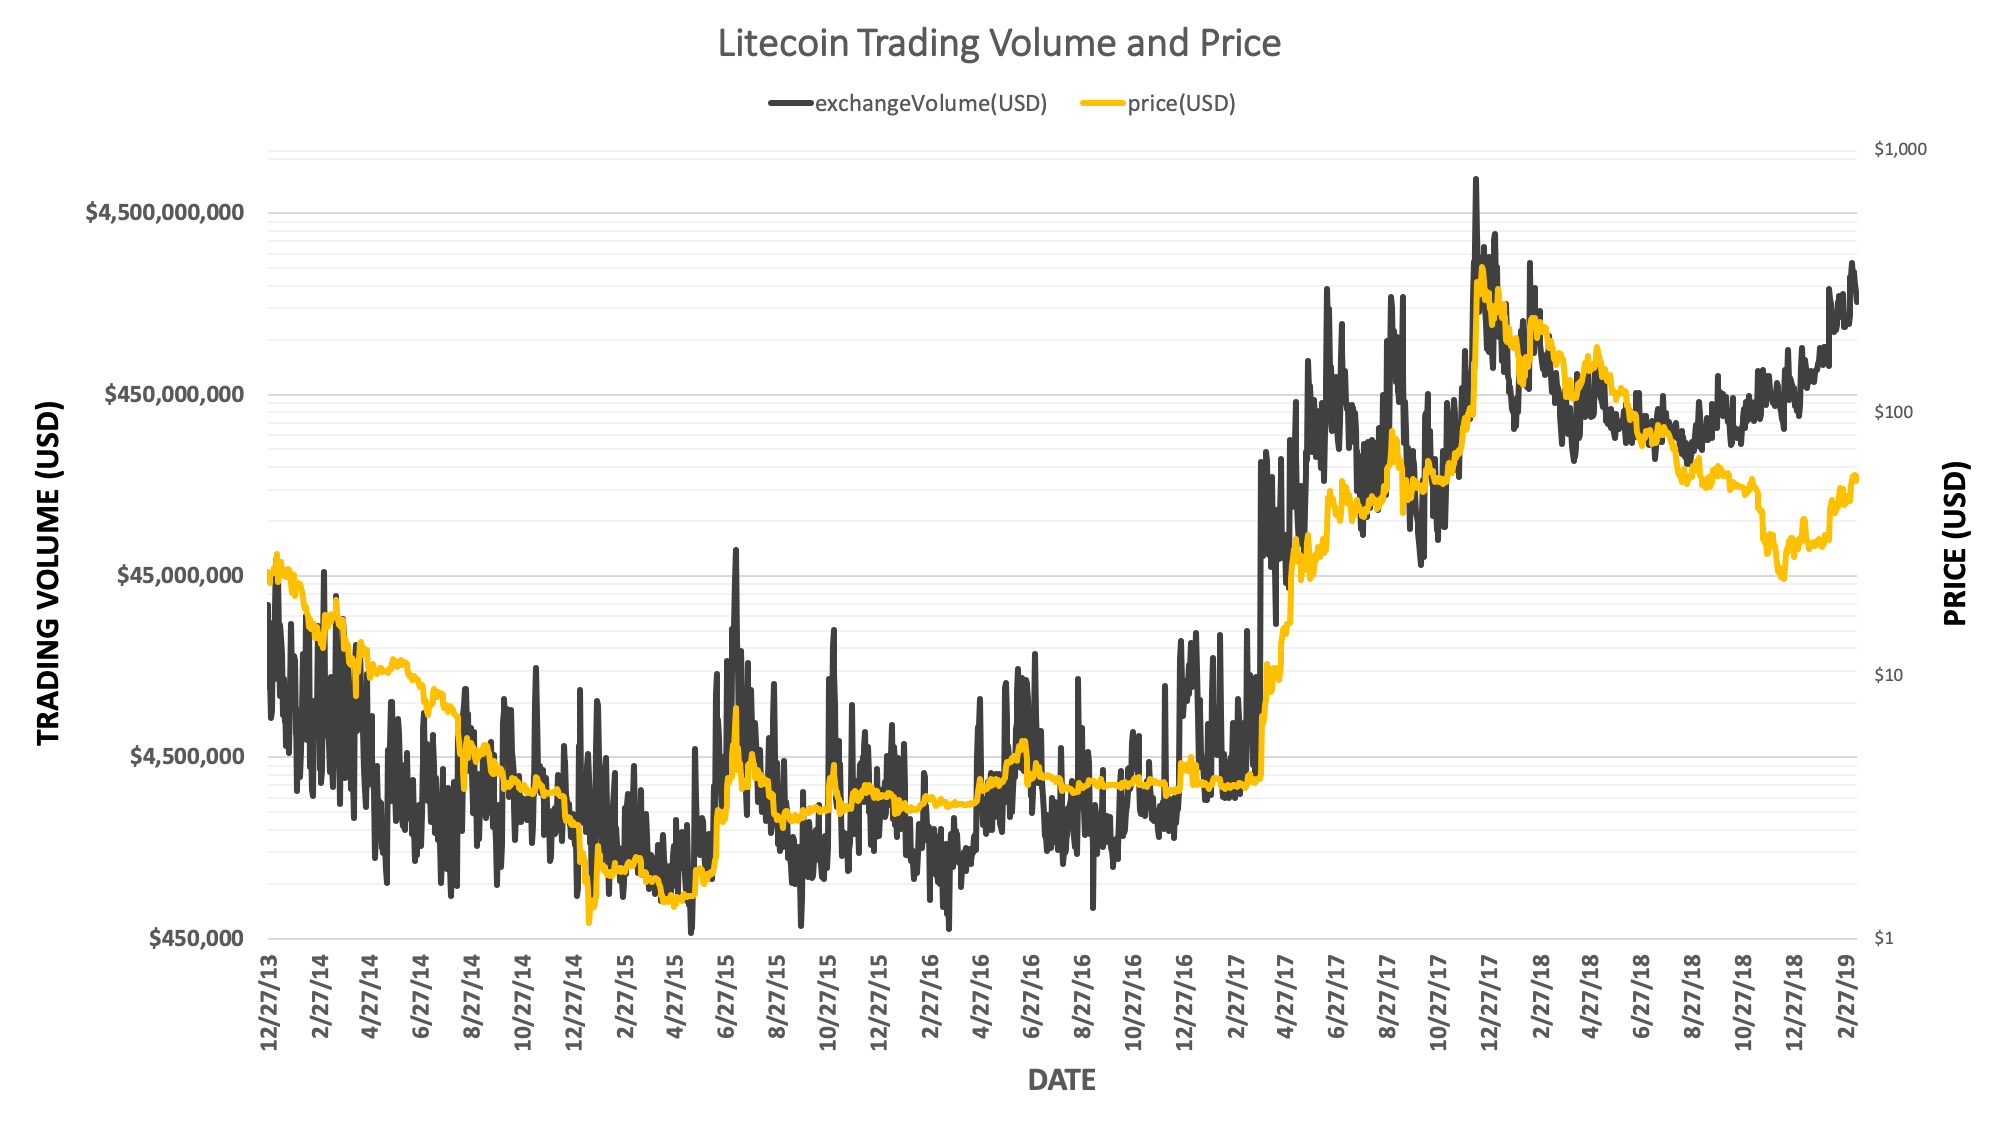 Bitcoin Trading Volume Tops $11 Billion For First Time In Nearly a Year 2  PASSIVE INCOME IDEAS BITCOIN AND BLOCKCHAIN